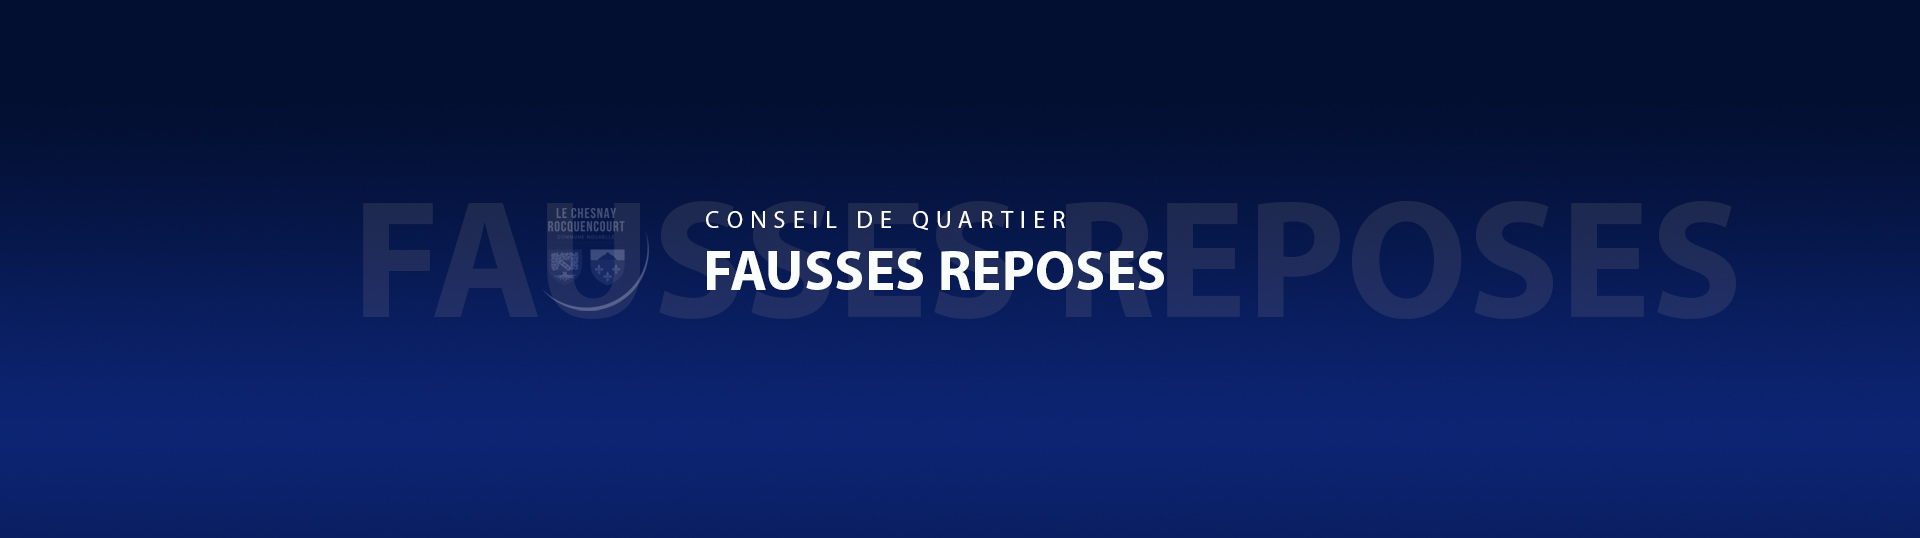 CDQ Fausses Reposes